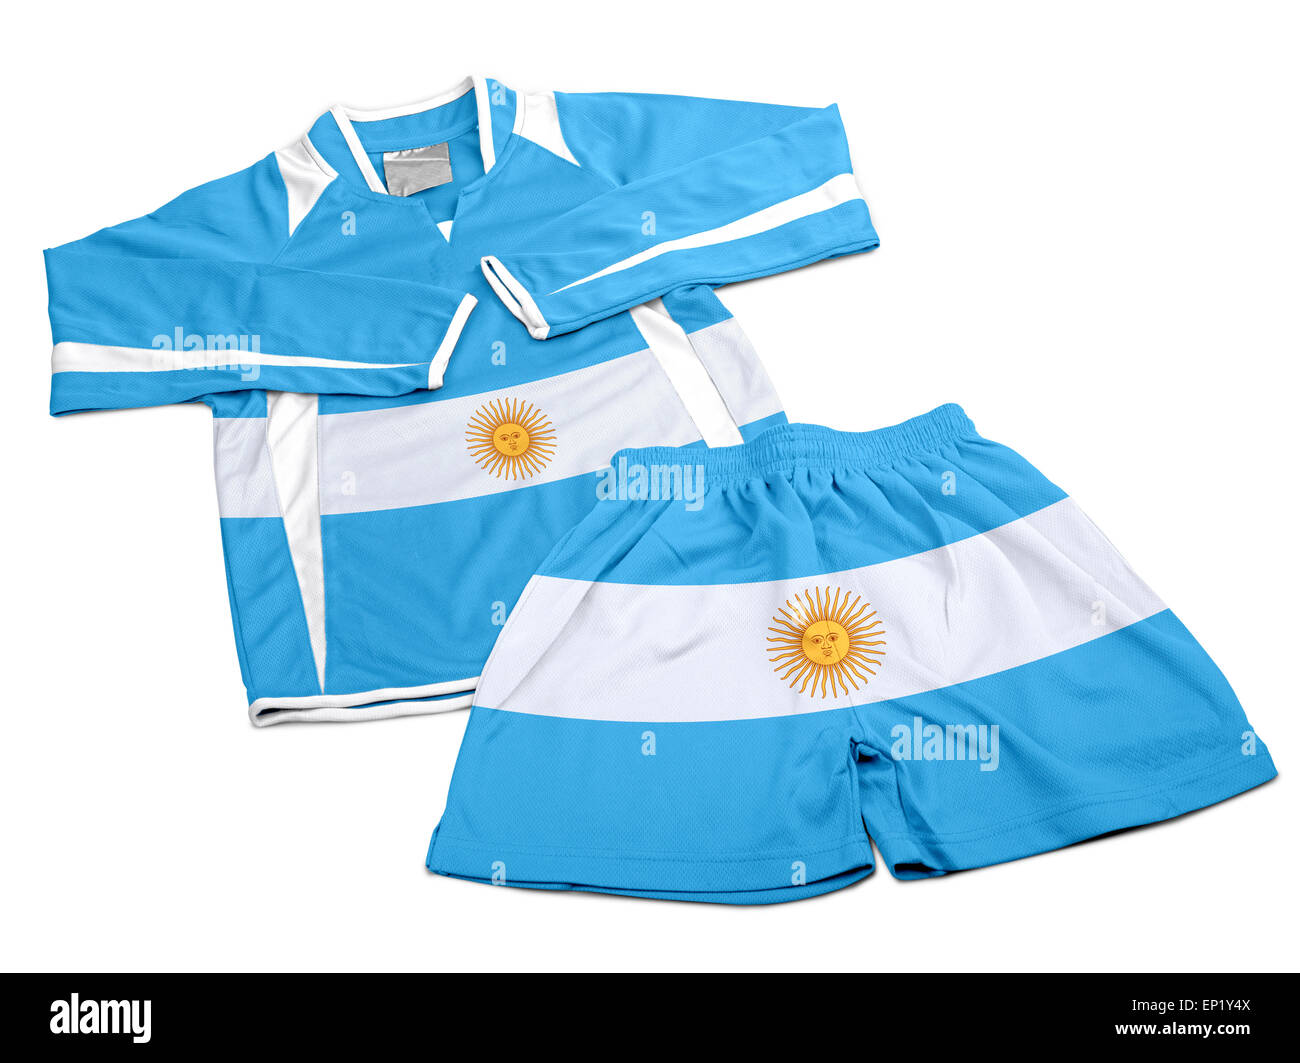 D'un drapeau de l'Argentine sur le nylon polyester sportswear Football Short and Sweet shirt isolé Photo Stock